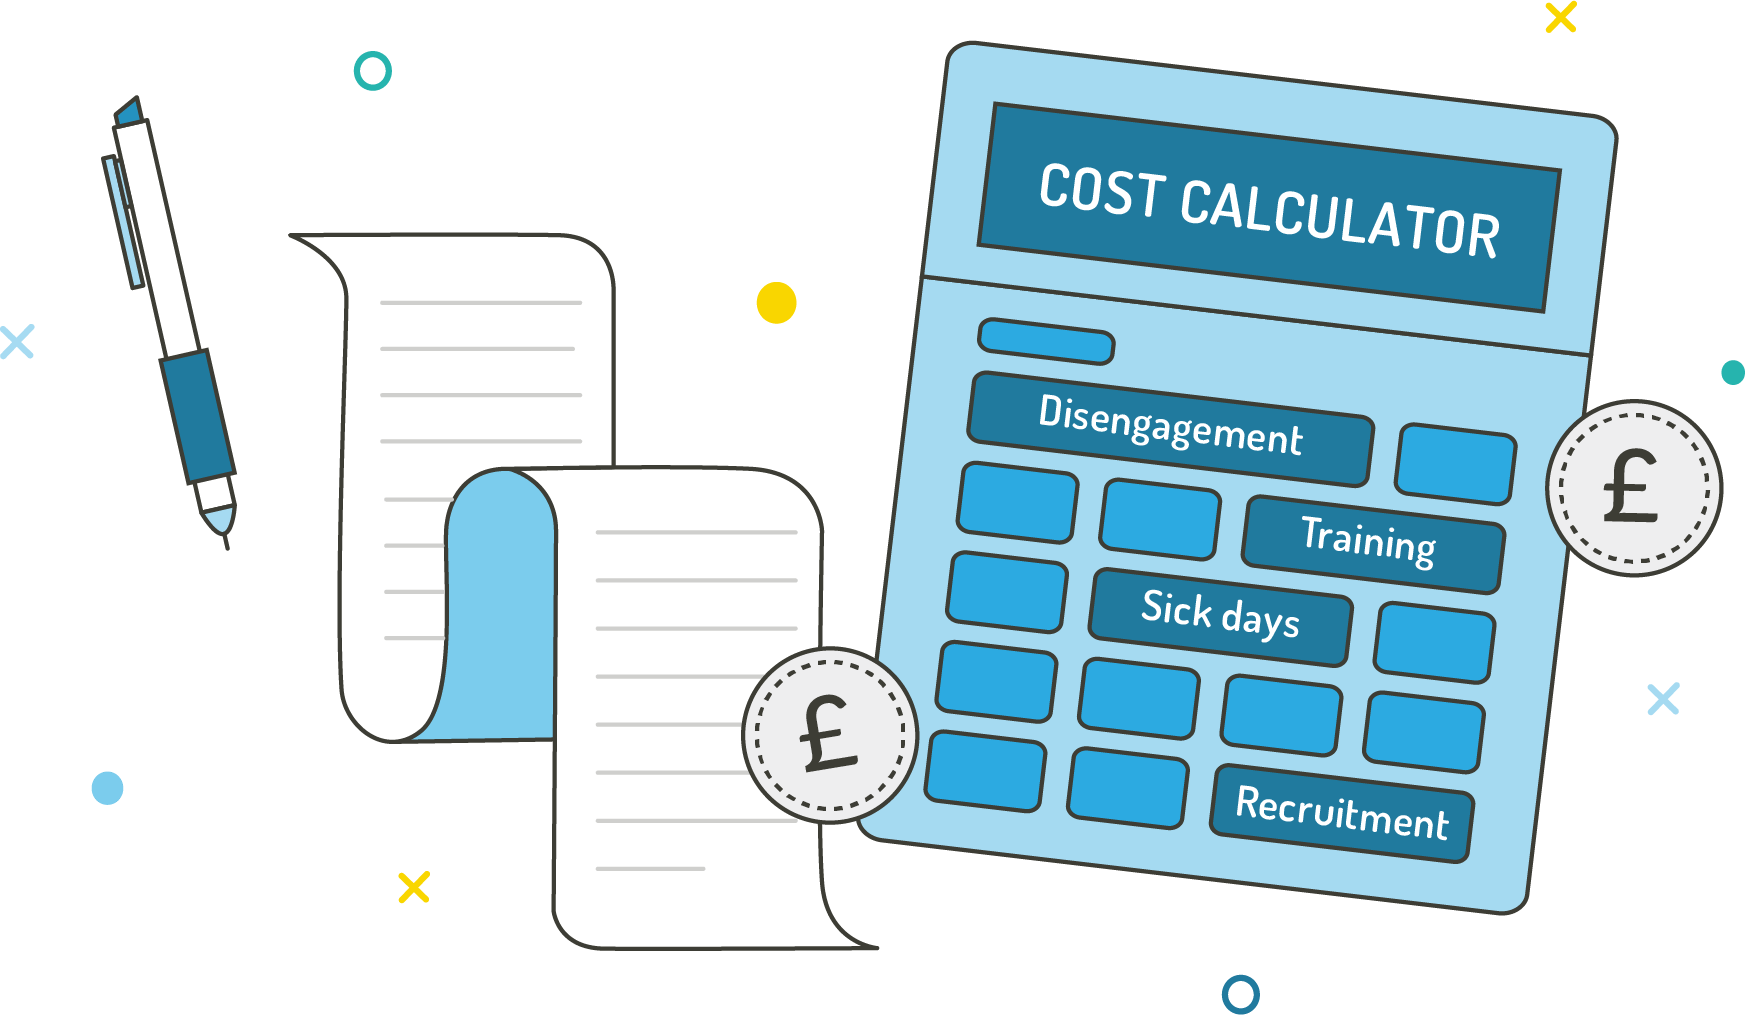 Disengagement Cost Calculator